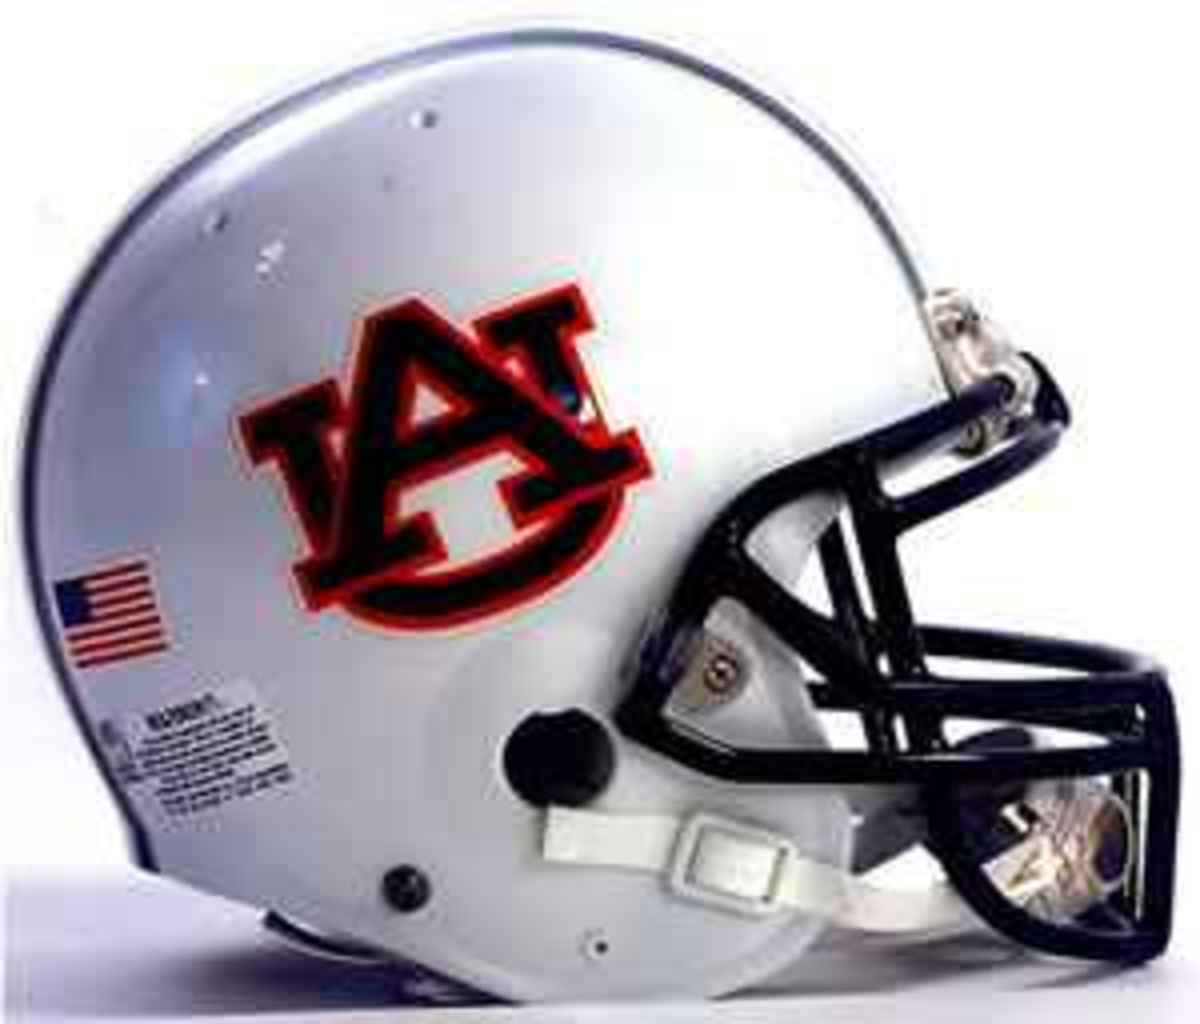 Auburn remains at #1 in the Spartan Nation College Football top 25.